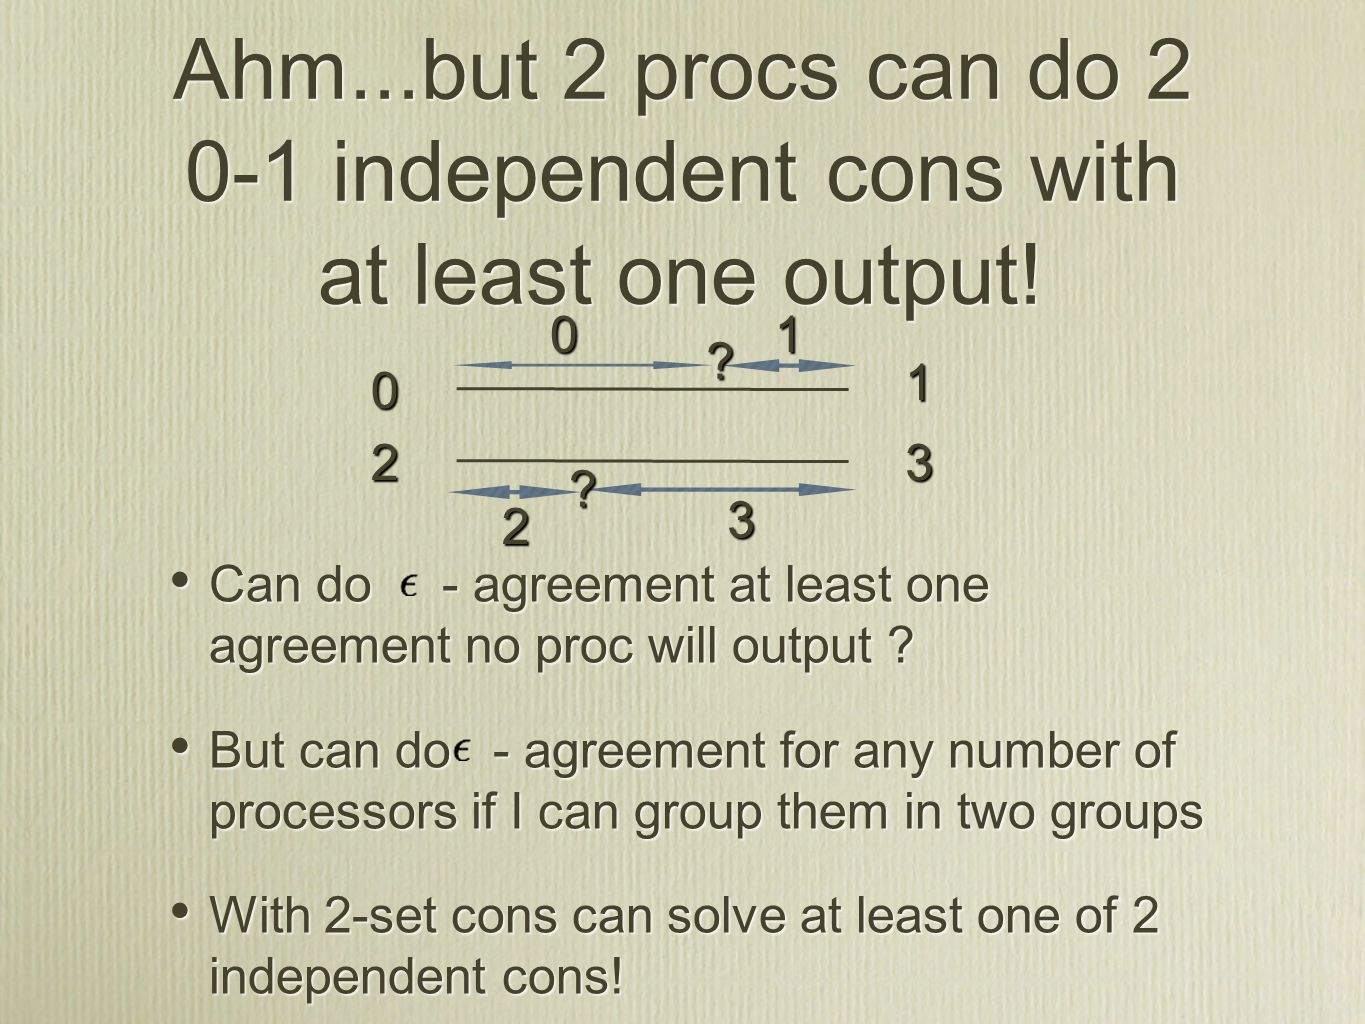 Ahm...but 2 procs can do 2 0-1 independent cons with at least one output.